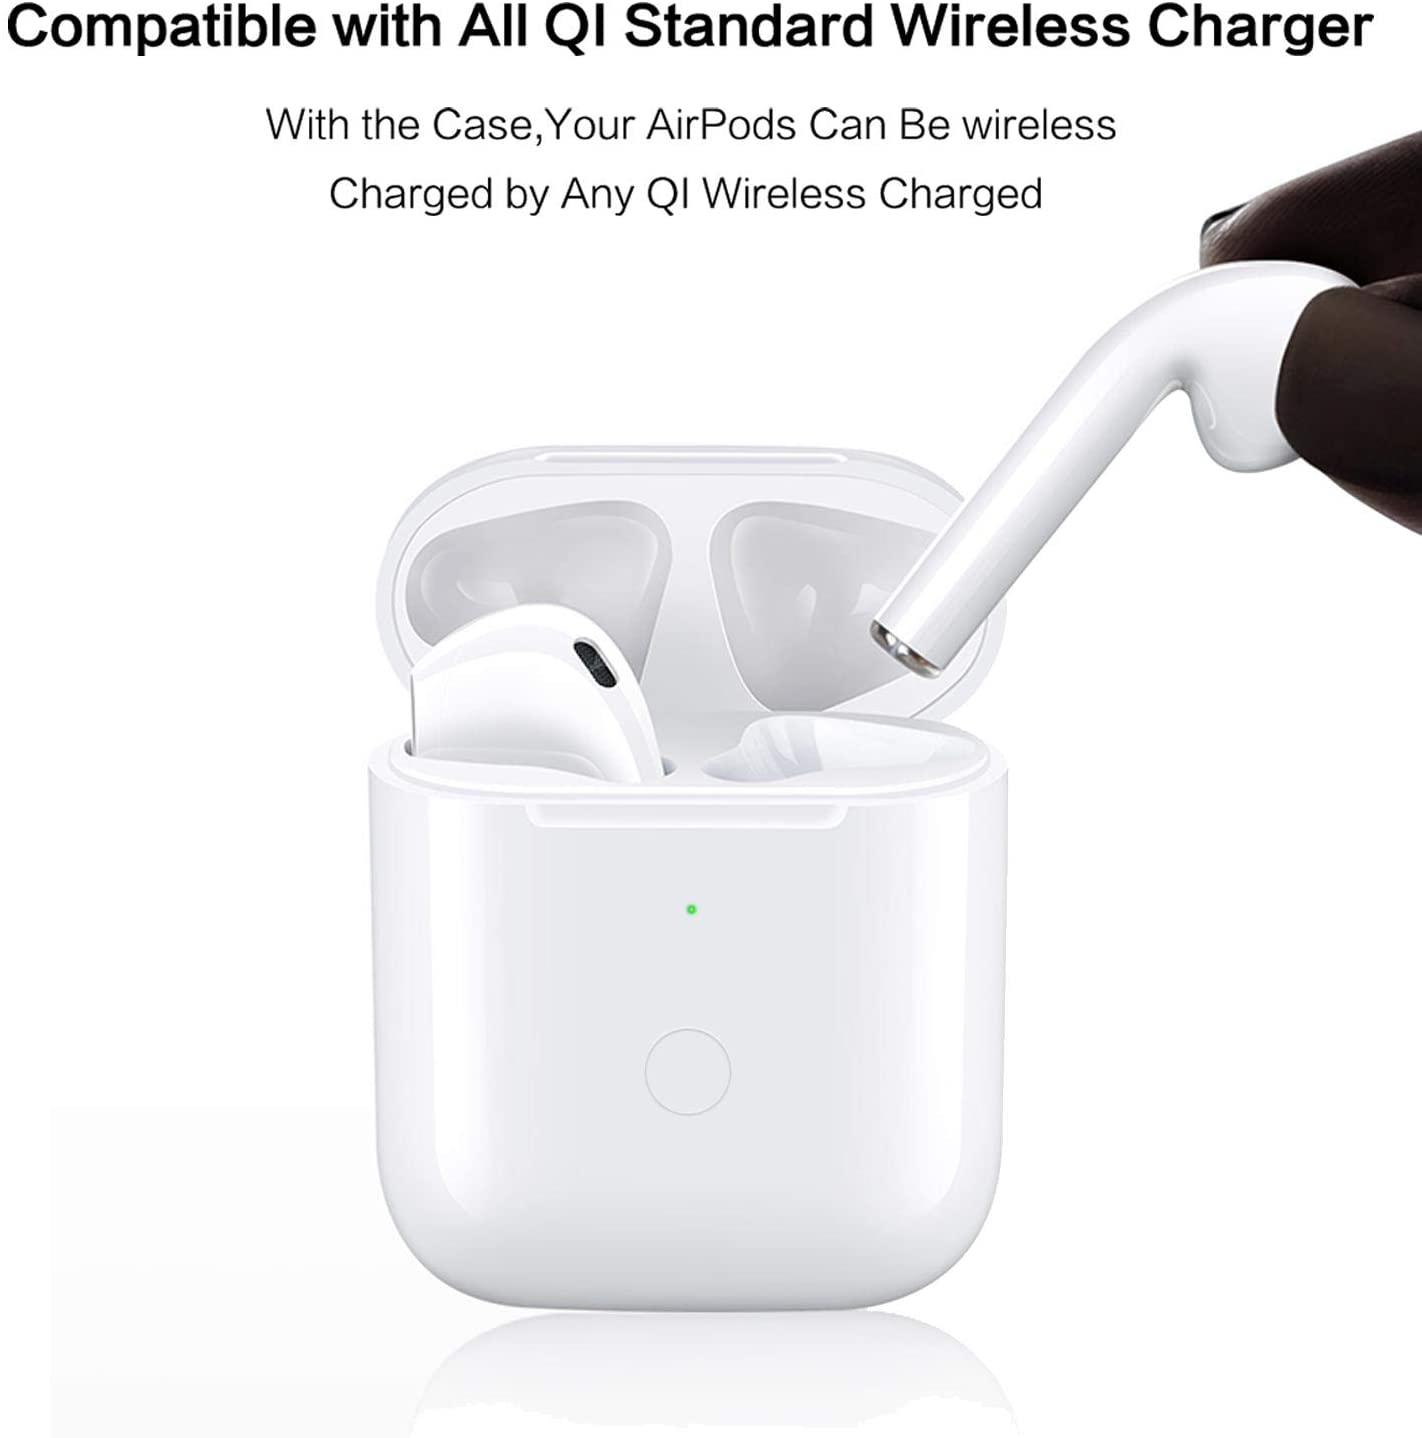 Wireless Charging Case For 1St And 2Nd Gen Airpods